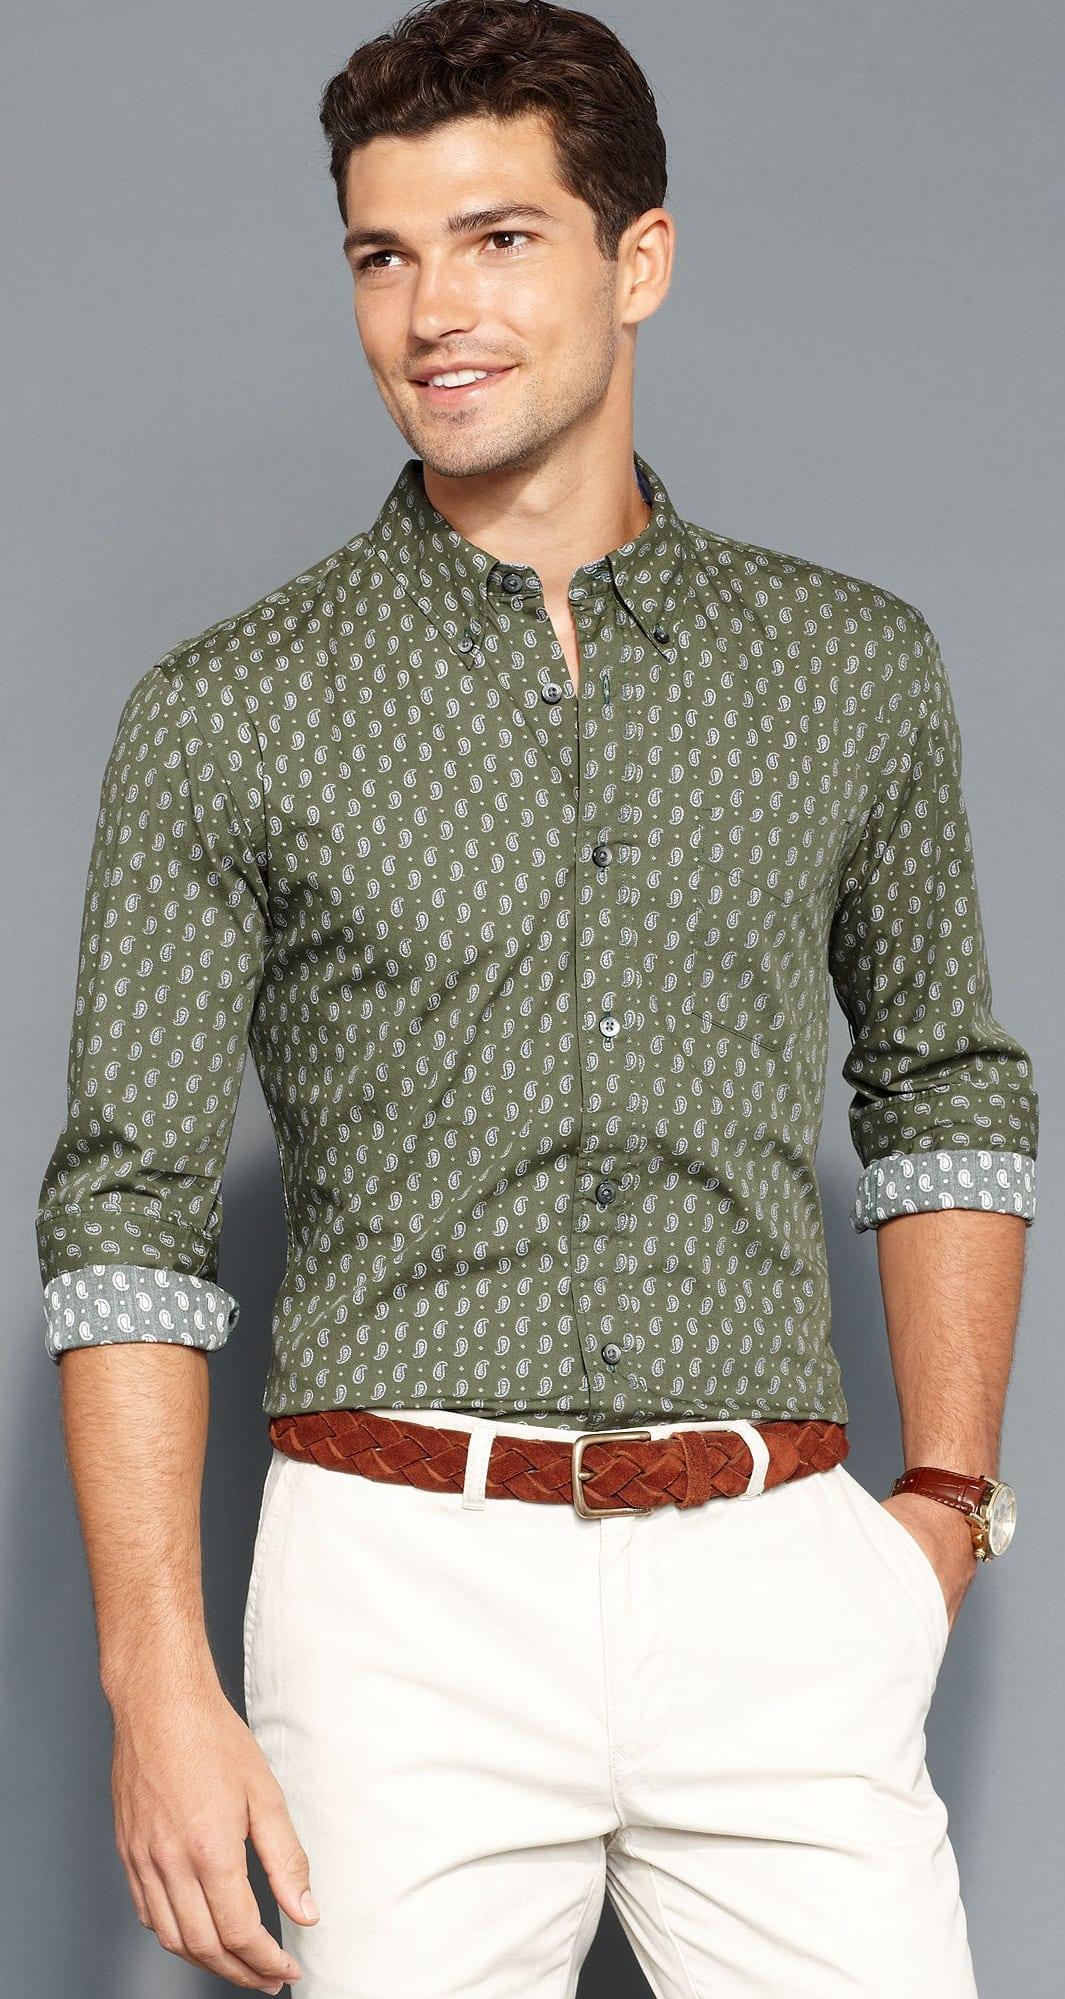 Casual Micro Print Outfit Ideas For Men